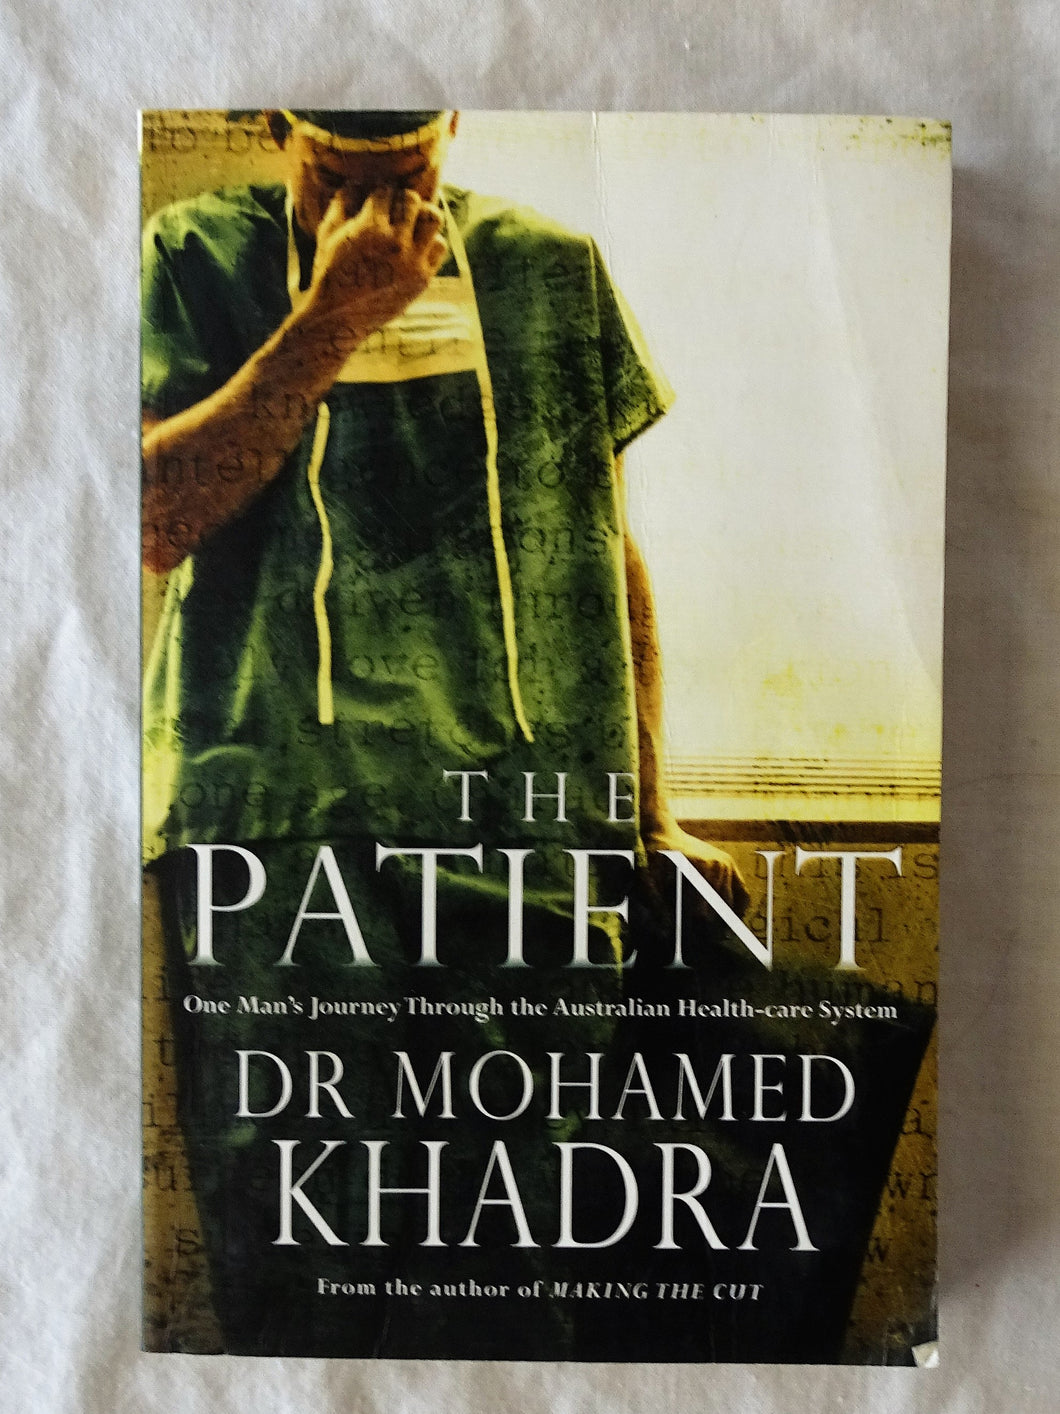 The Patient by Dr Mohamed Khadra